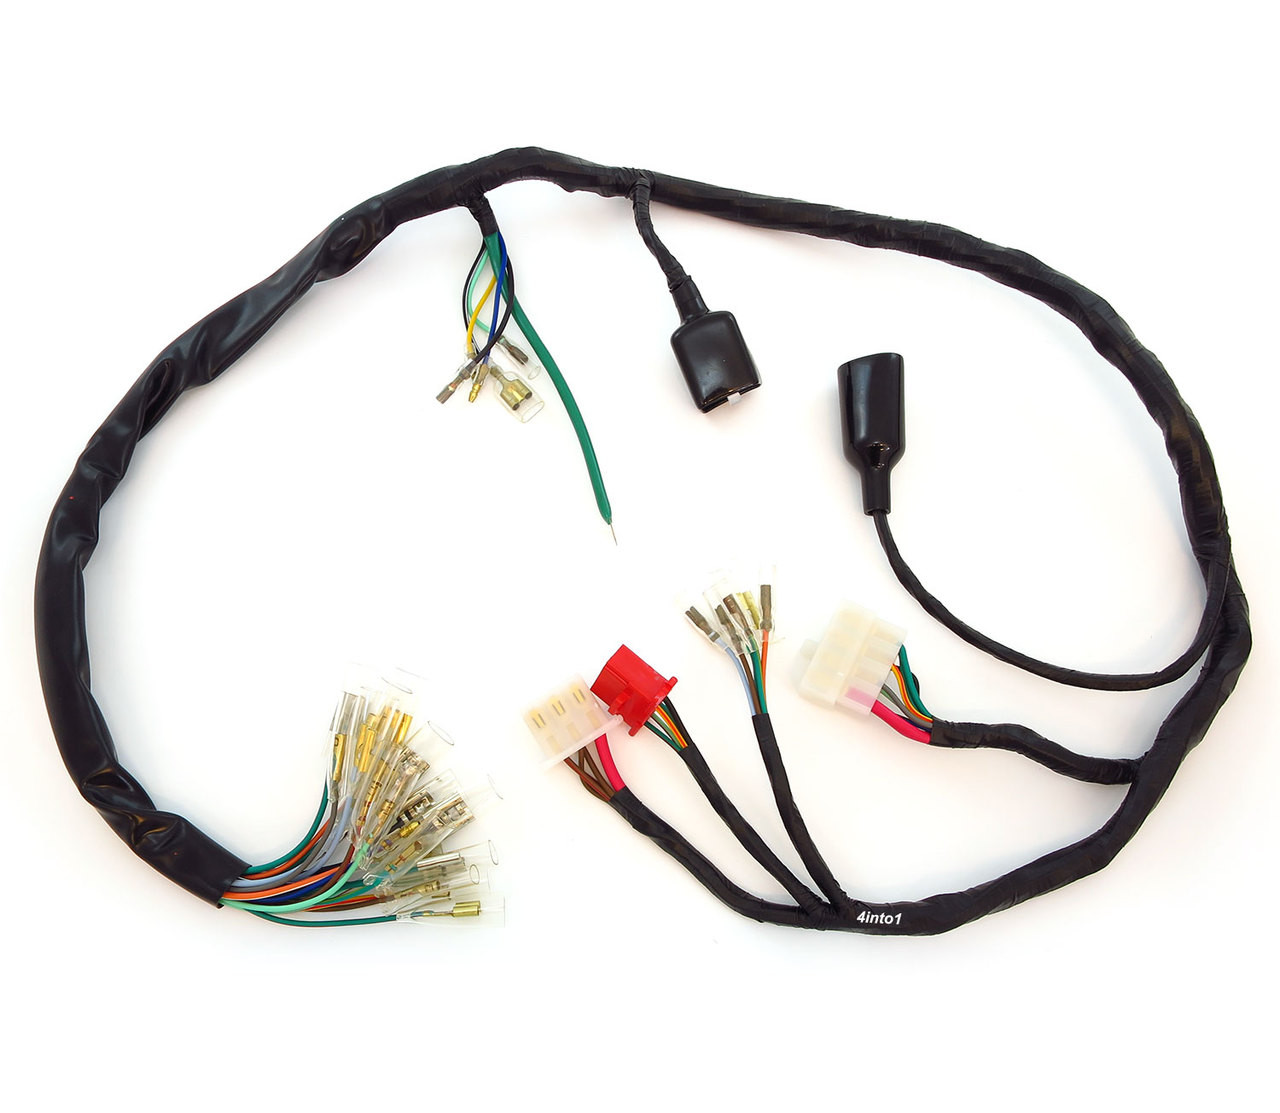 hight resolution of main wiring harness 32100 374 000 honda cb550k 1974 1975 honda wiring harness color code honda wiring harnesses